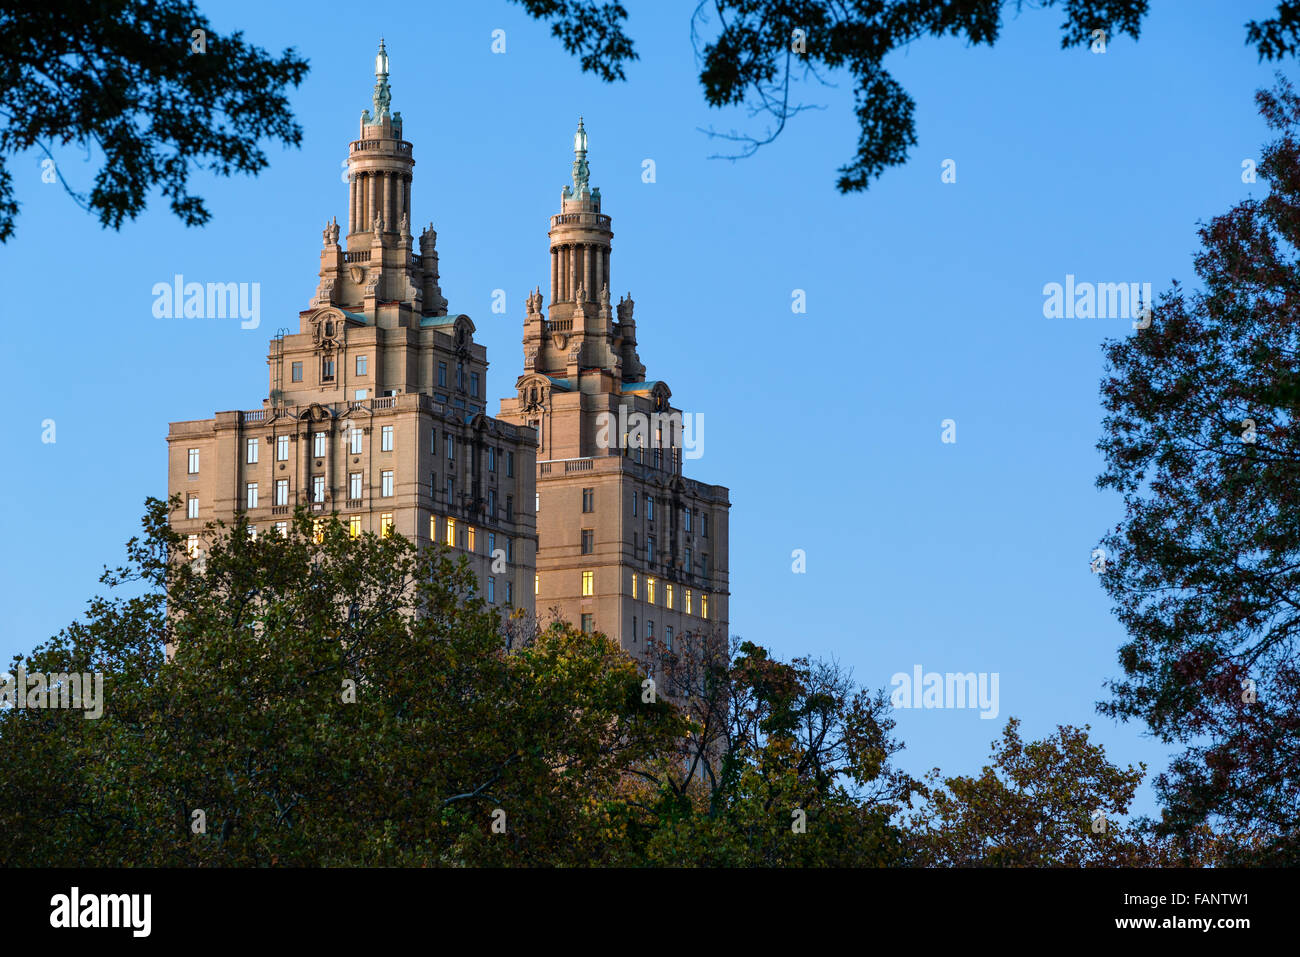 Close-up of the two towers of the San Remo building at twilight across Central Park, Upper West Side, Manhattan, - Stock Image